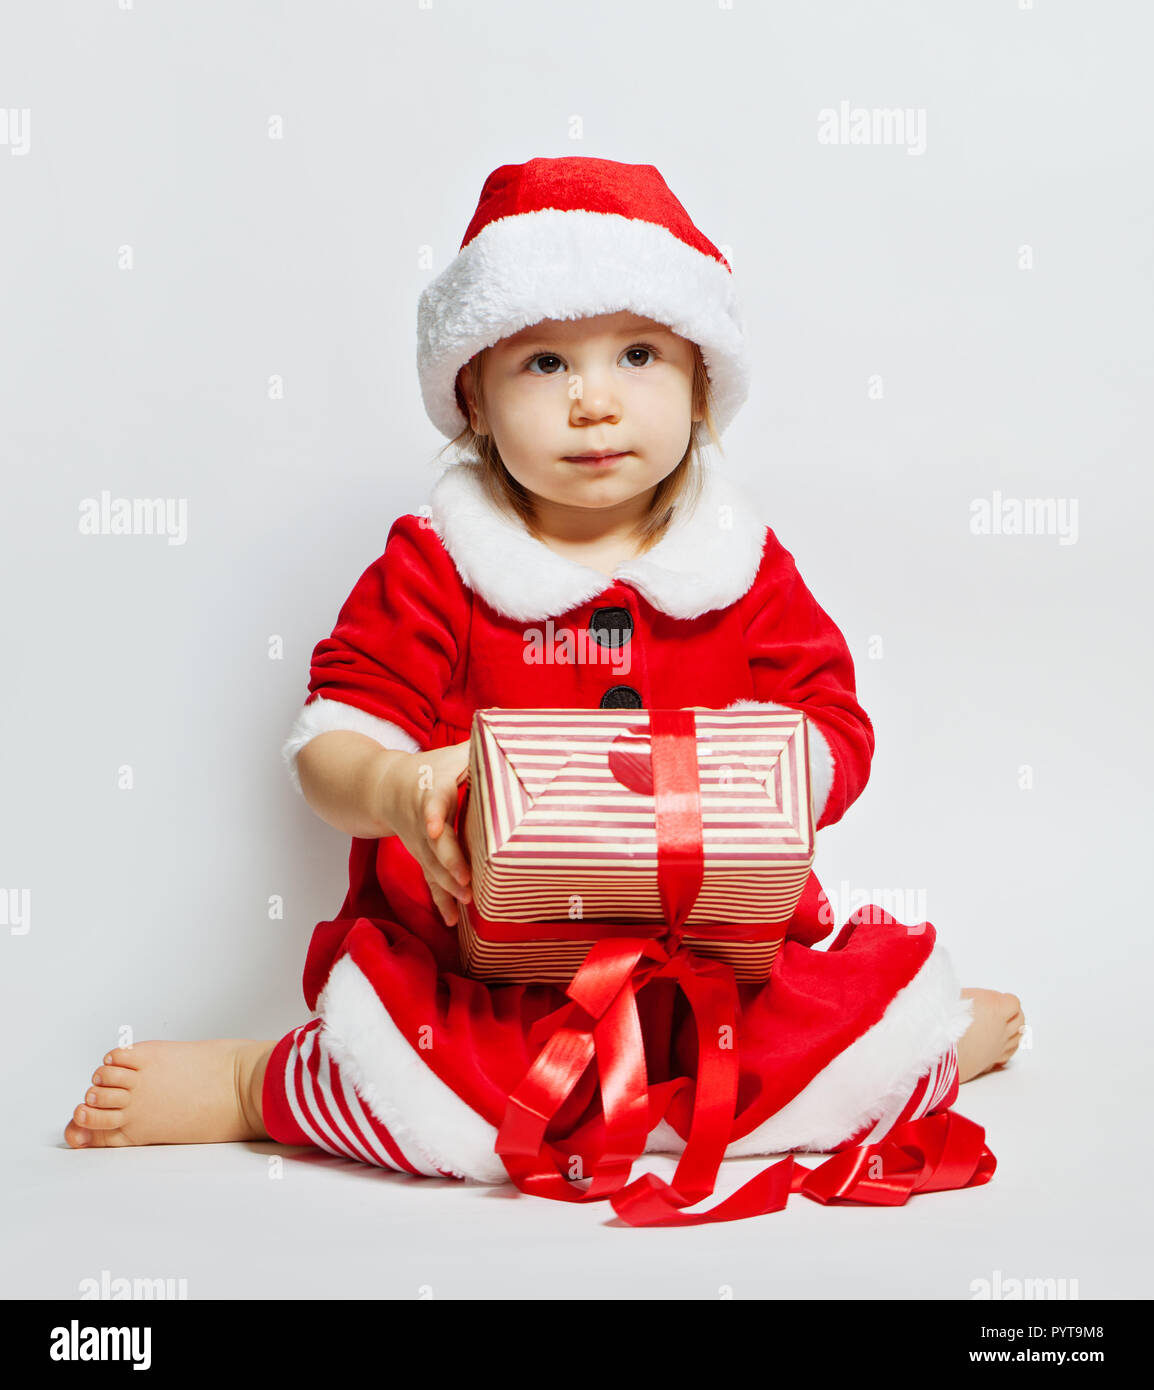 f2c78ddf7 Cute baby in santa hat with Christmas gift box on white background - Stock  Image